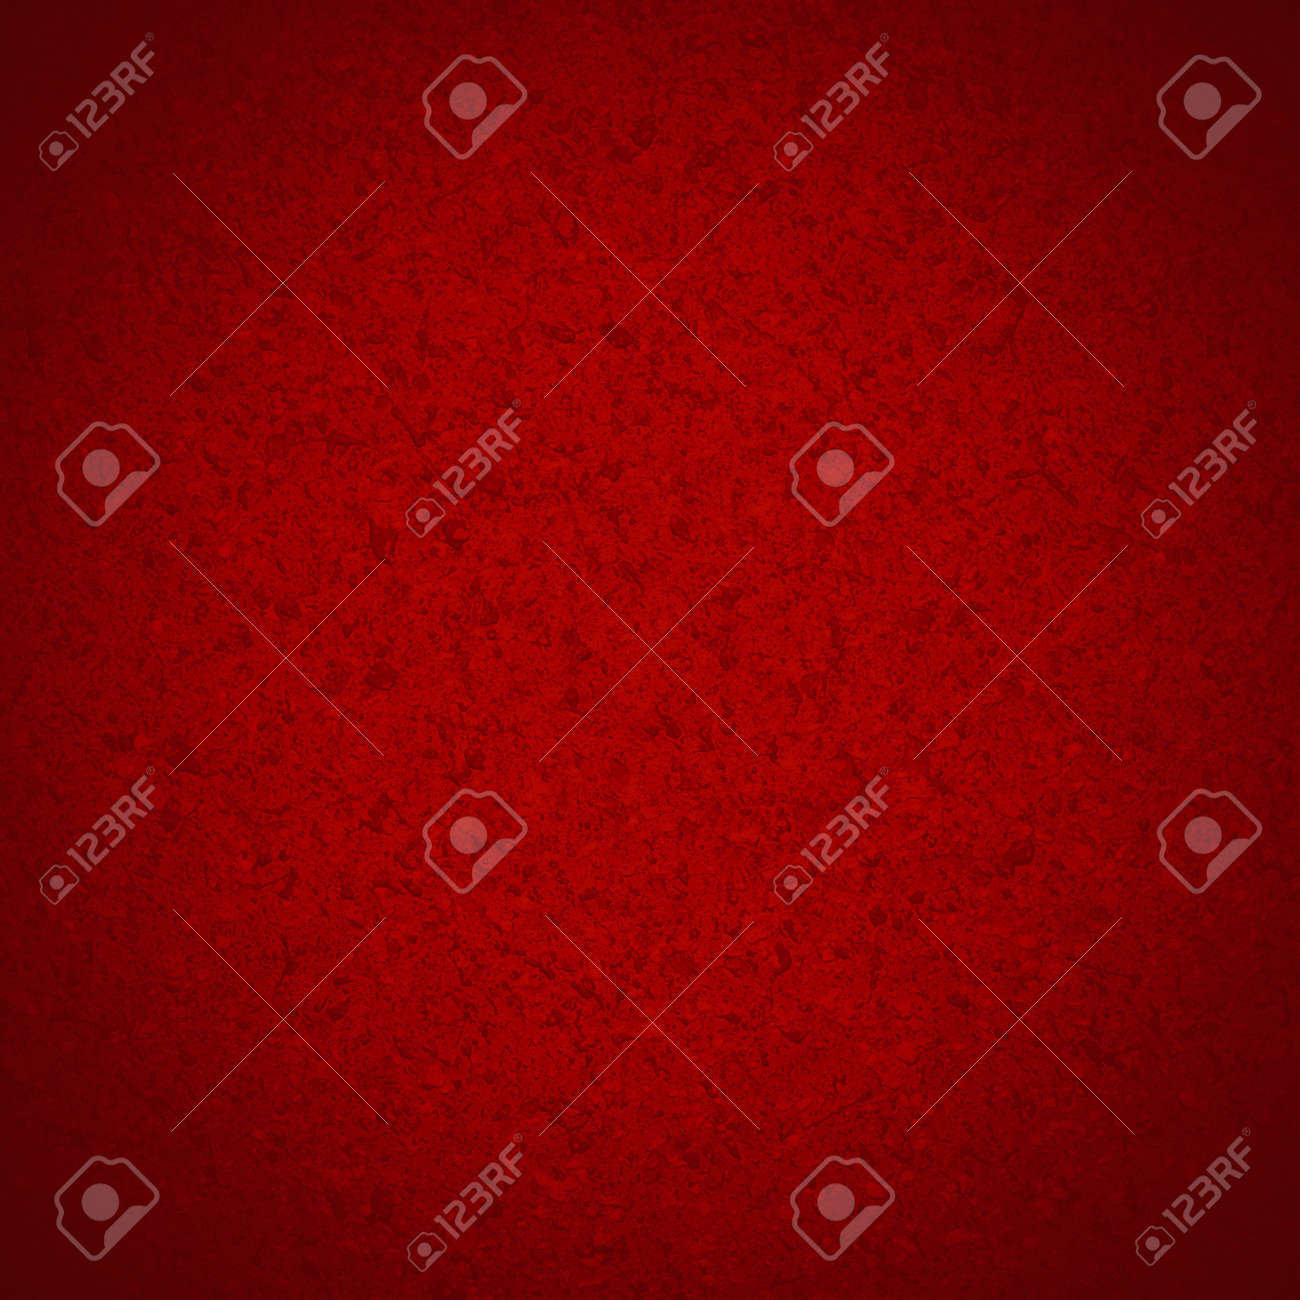 Grain red wall background or texture Stock Photo - 12910516